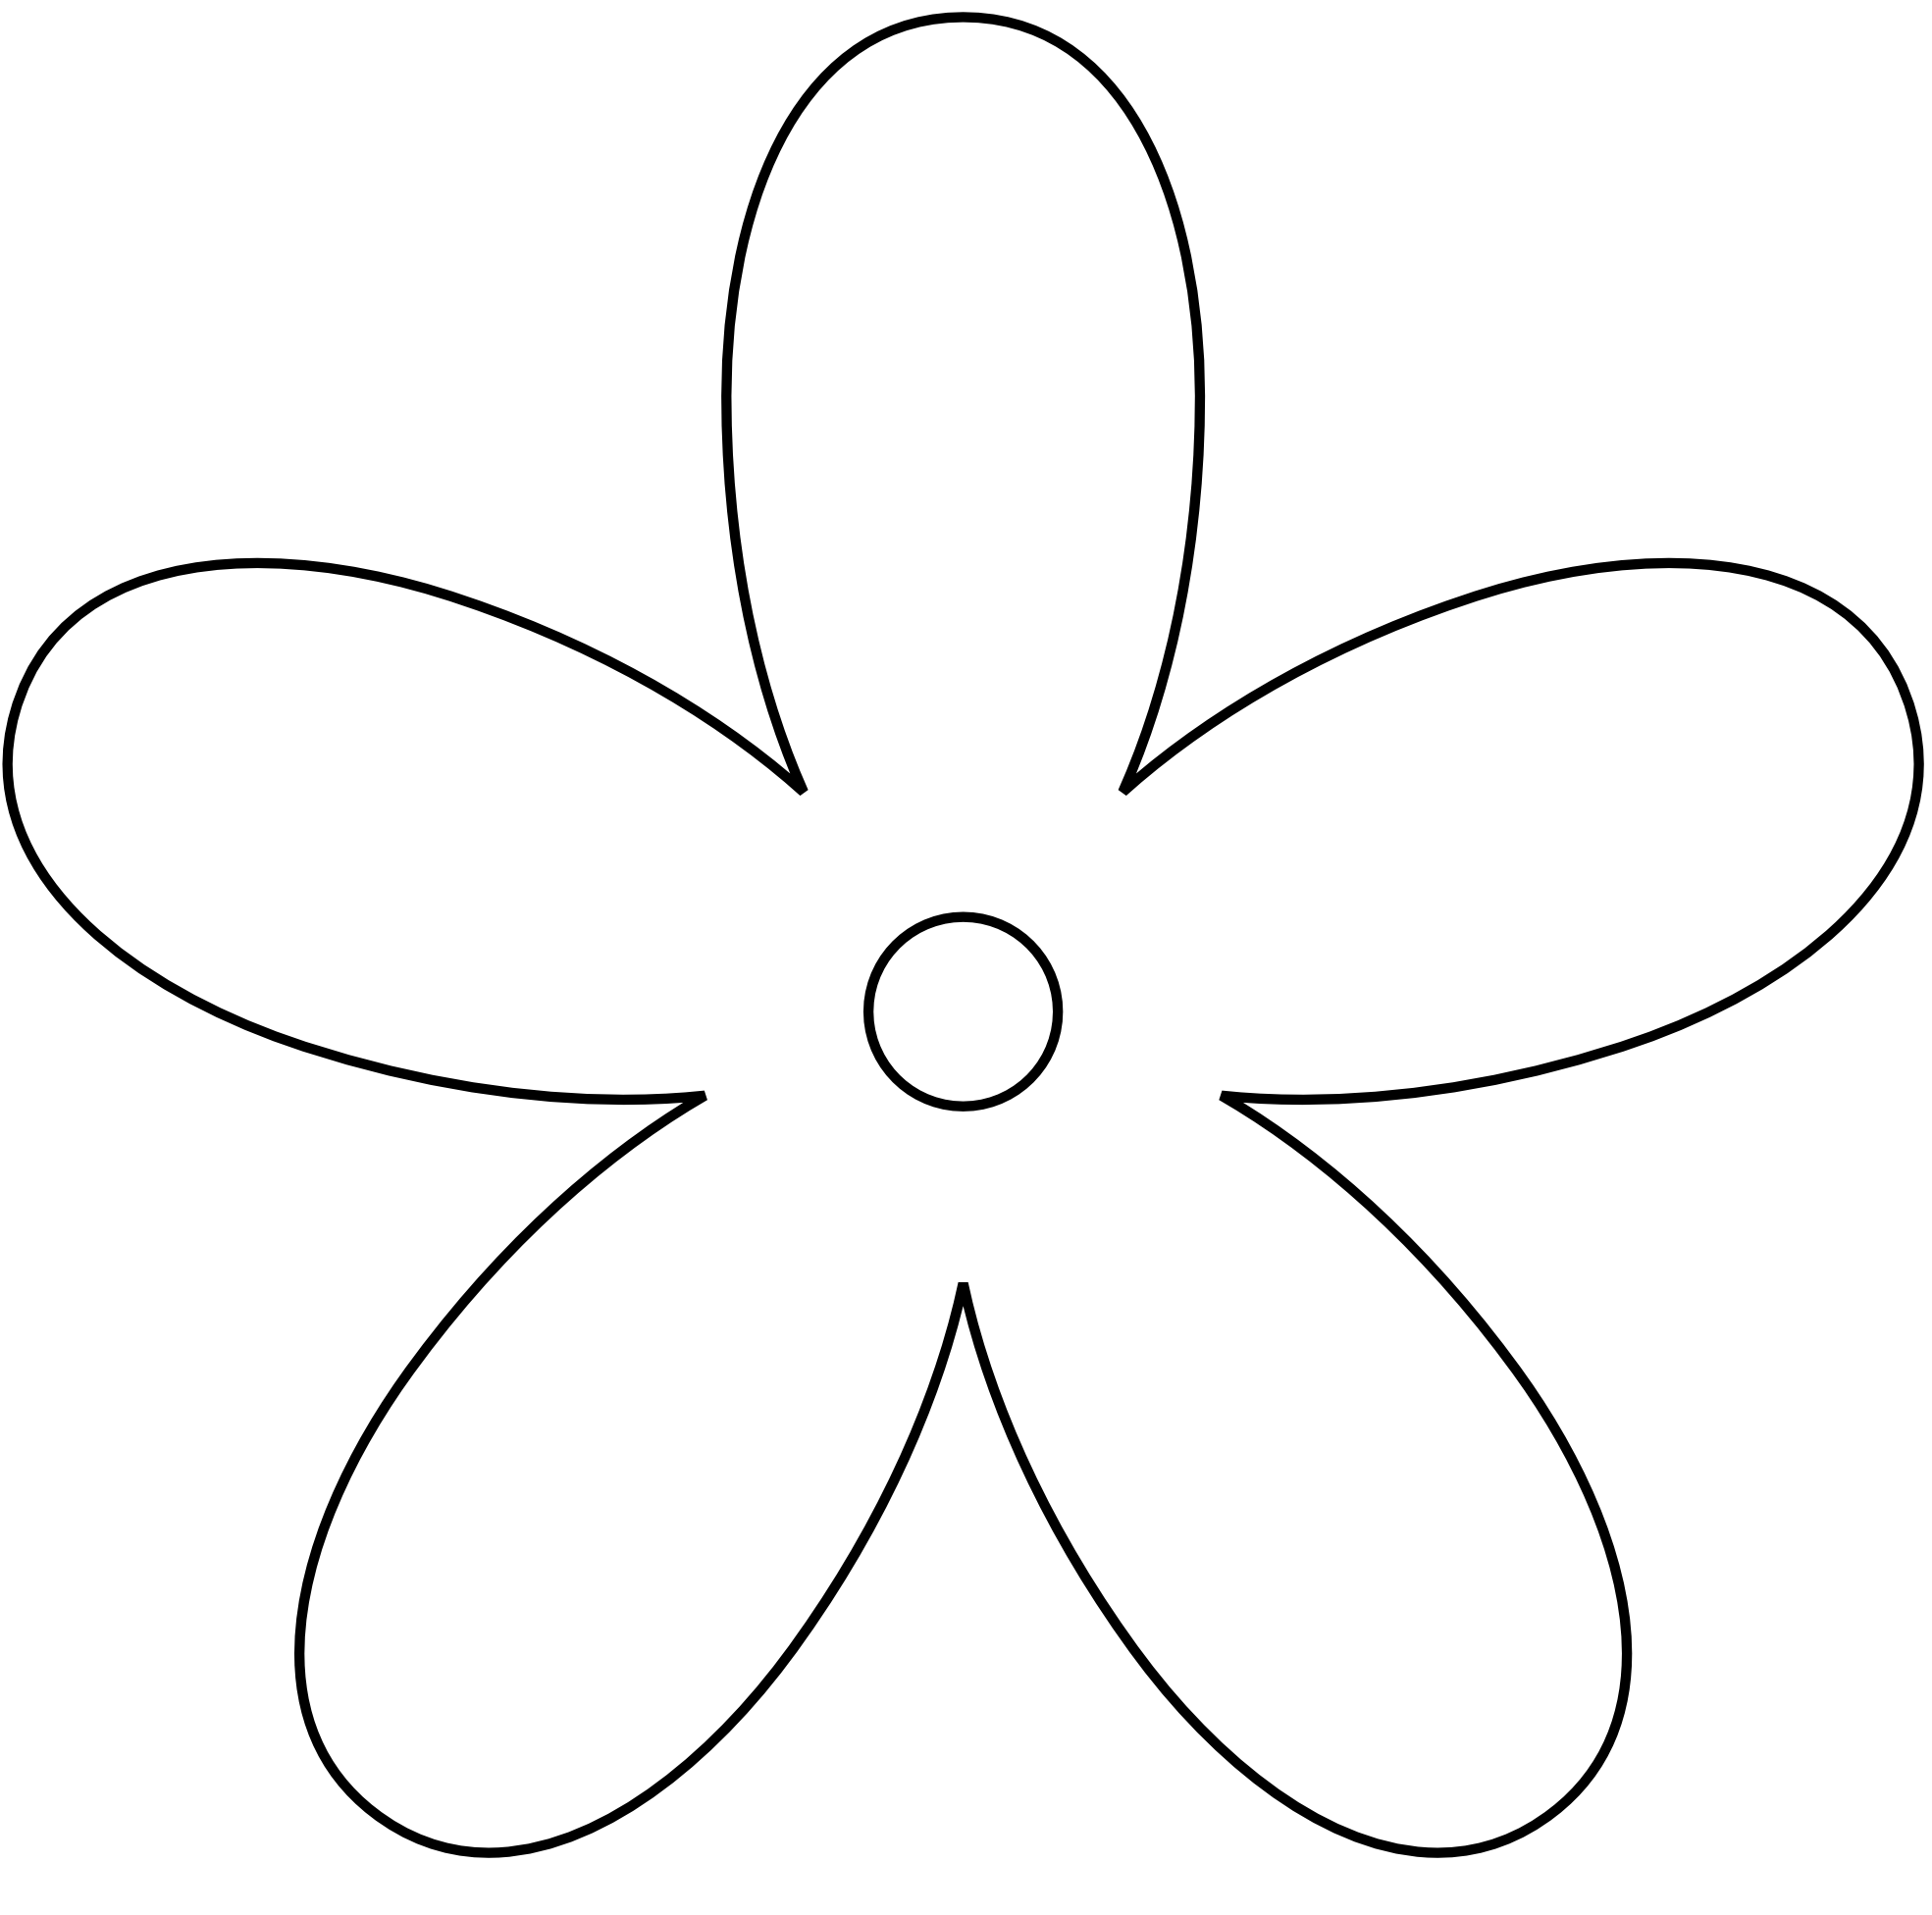 White Flower clipart #19, Download drawings